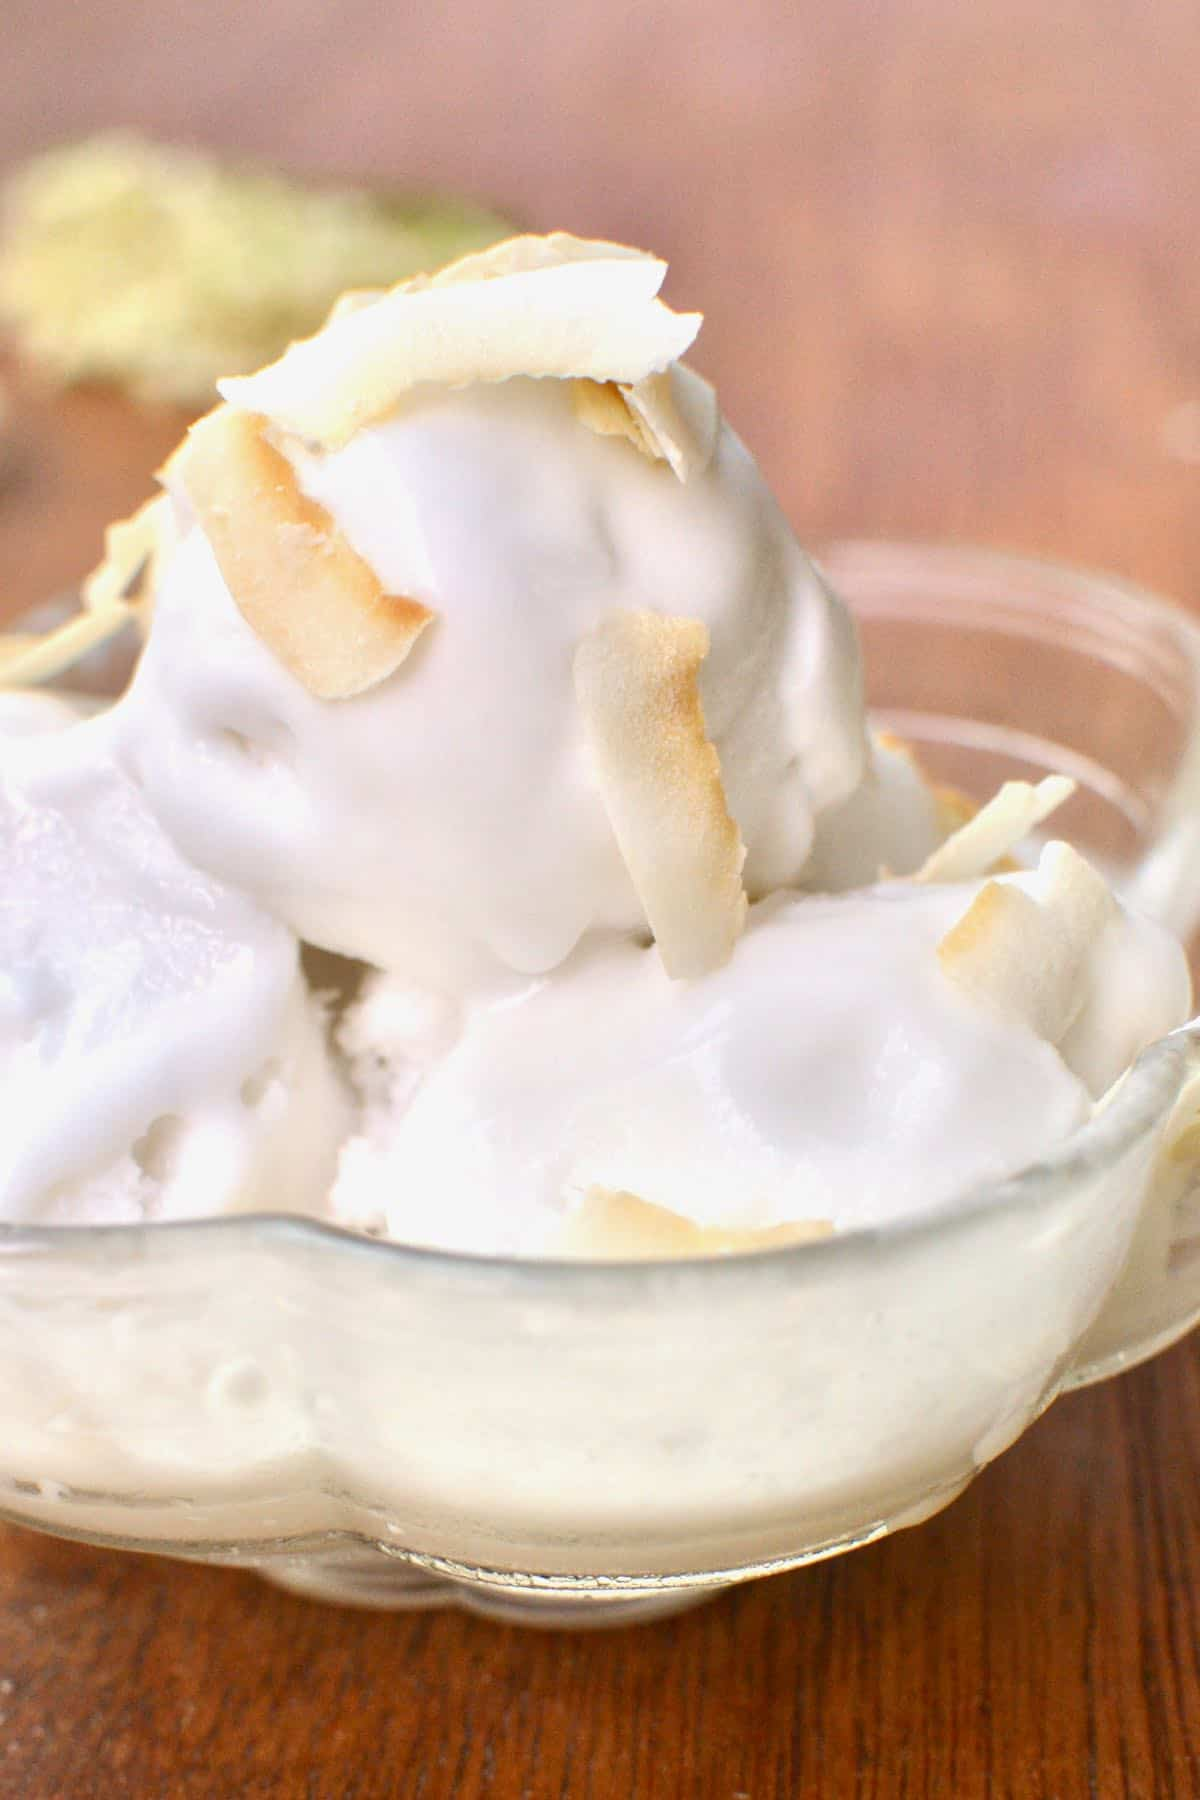 A bowl of three scoops of white elderflower coconut ice cream, topped with chips of dessiccated coconut